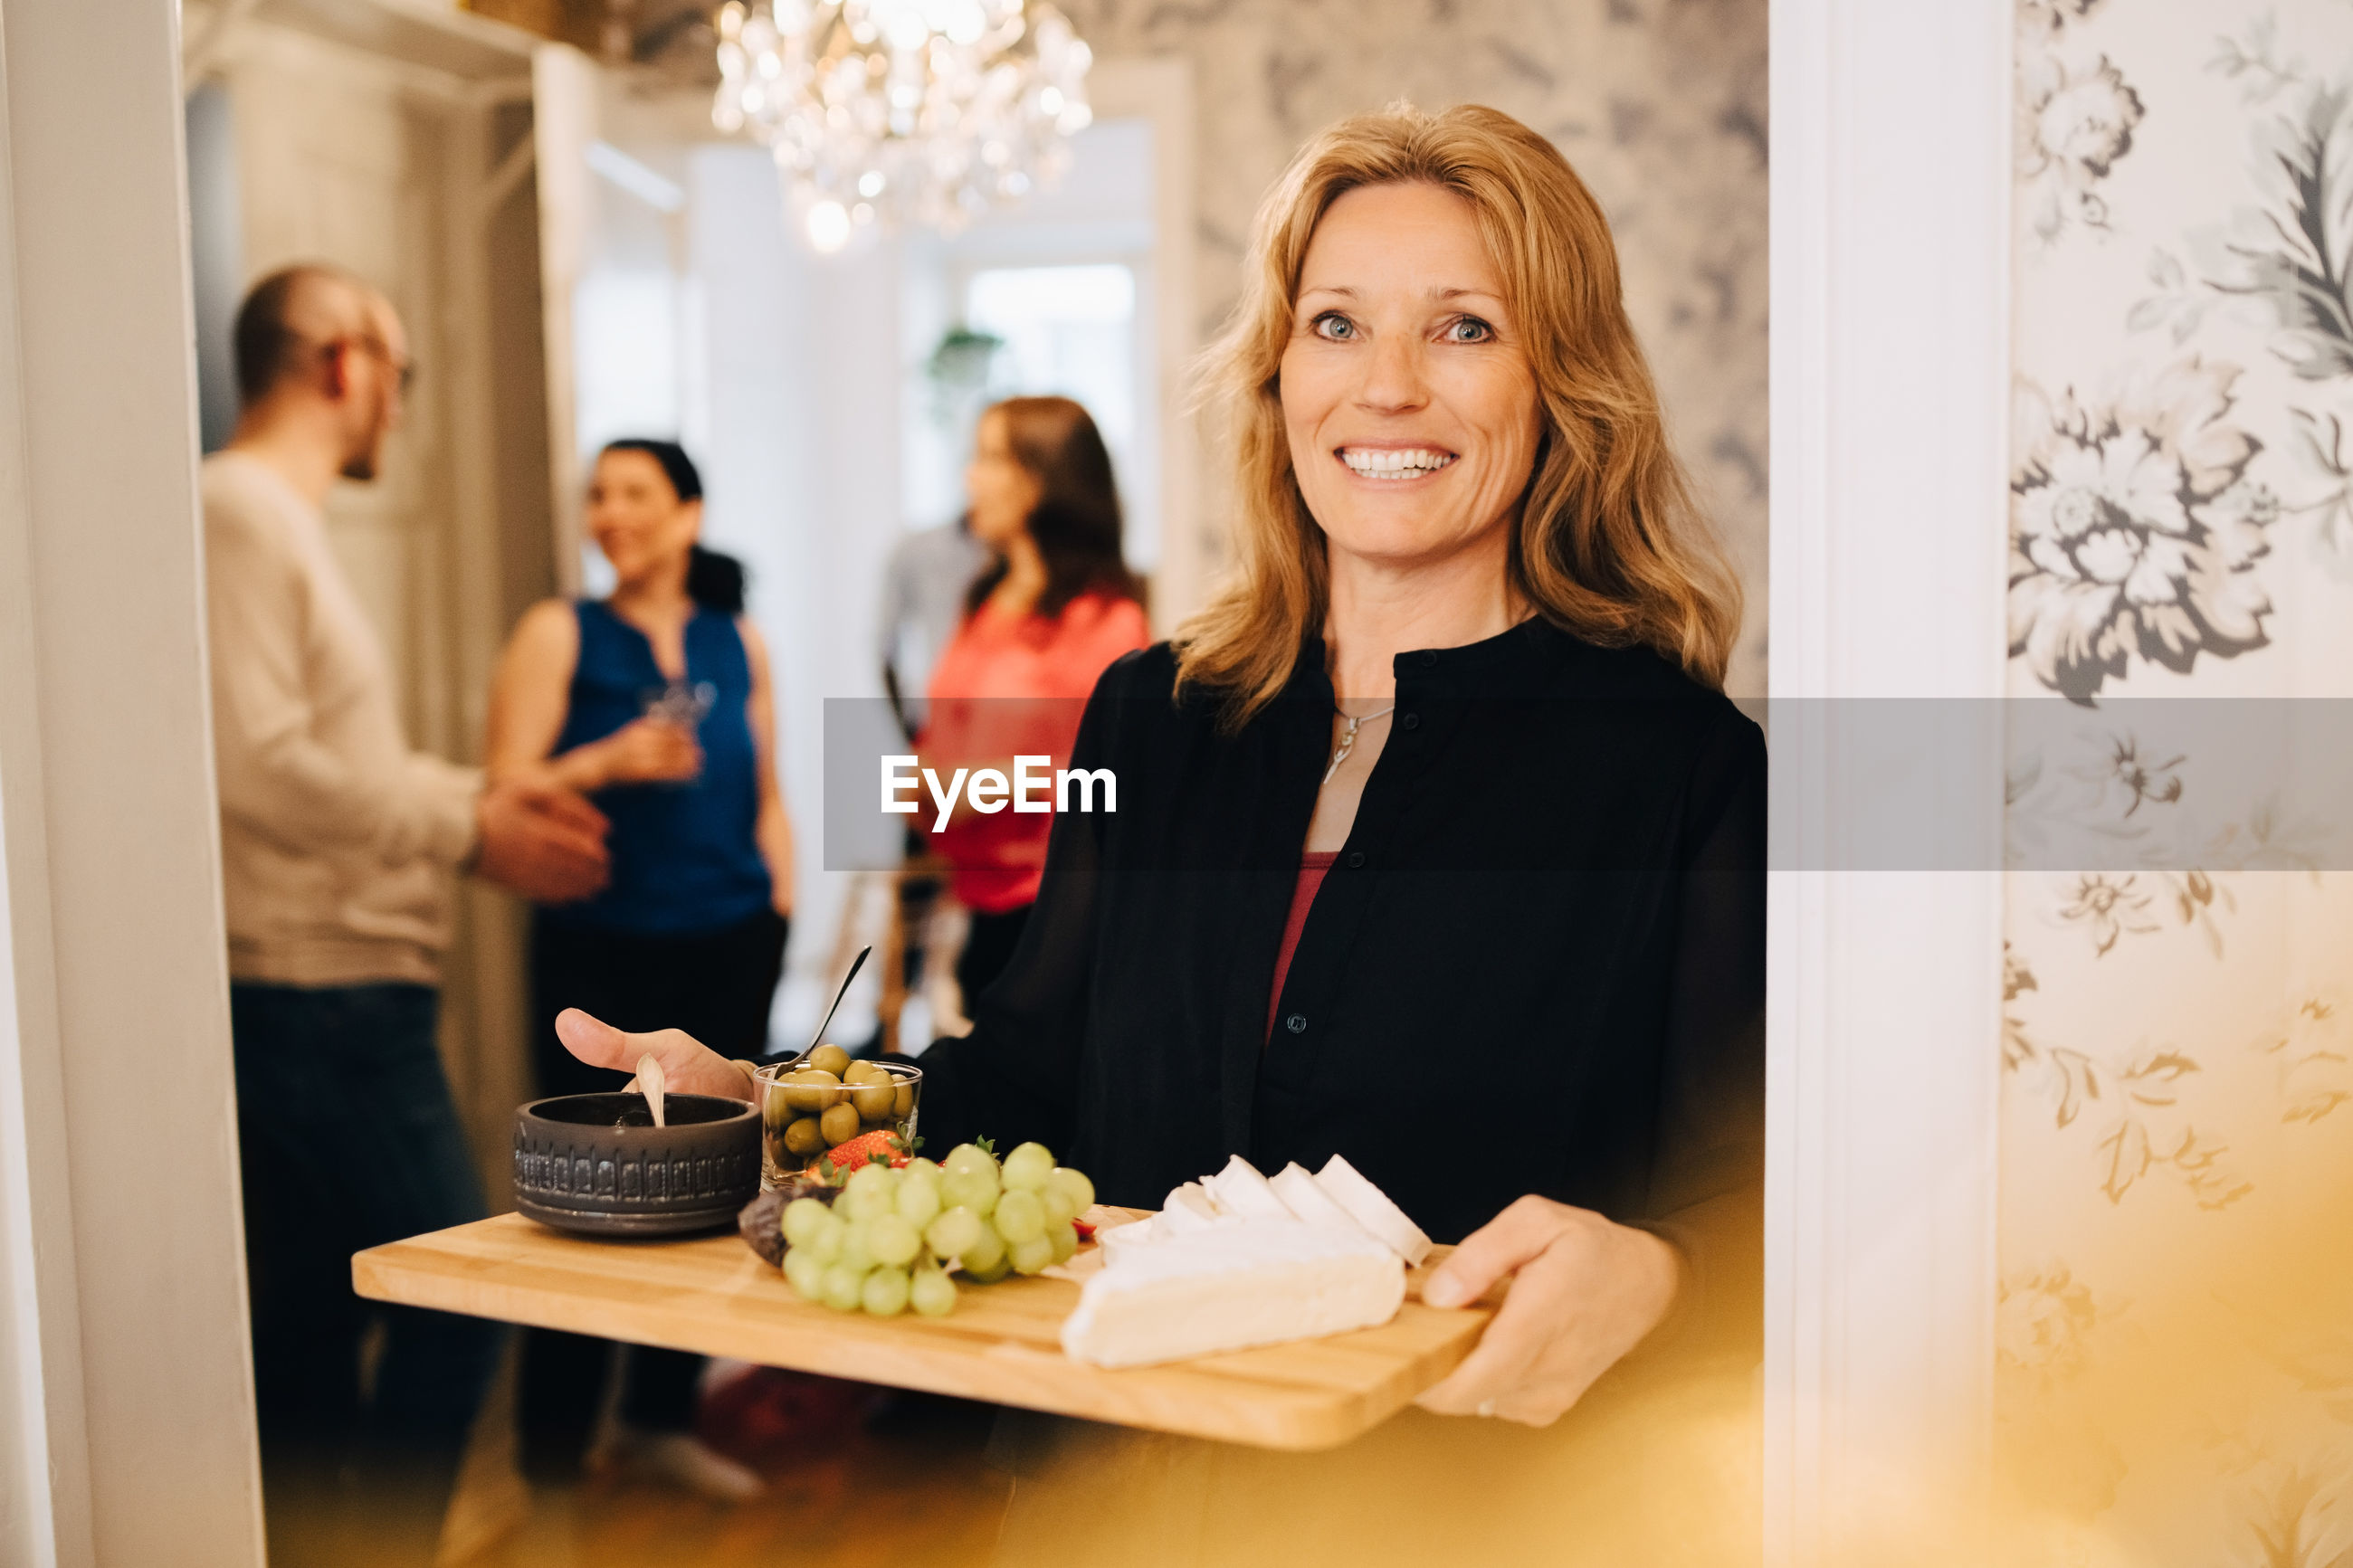 YOUNG WOMAN STANDING BY CAKE WITH FACE